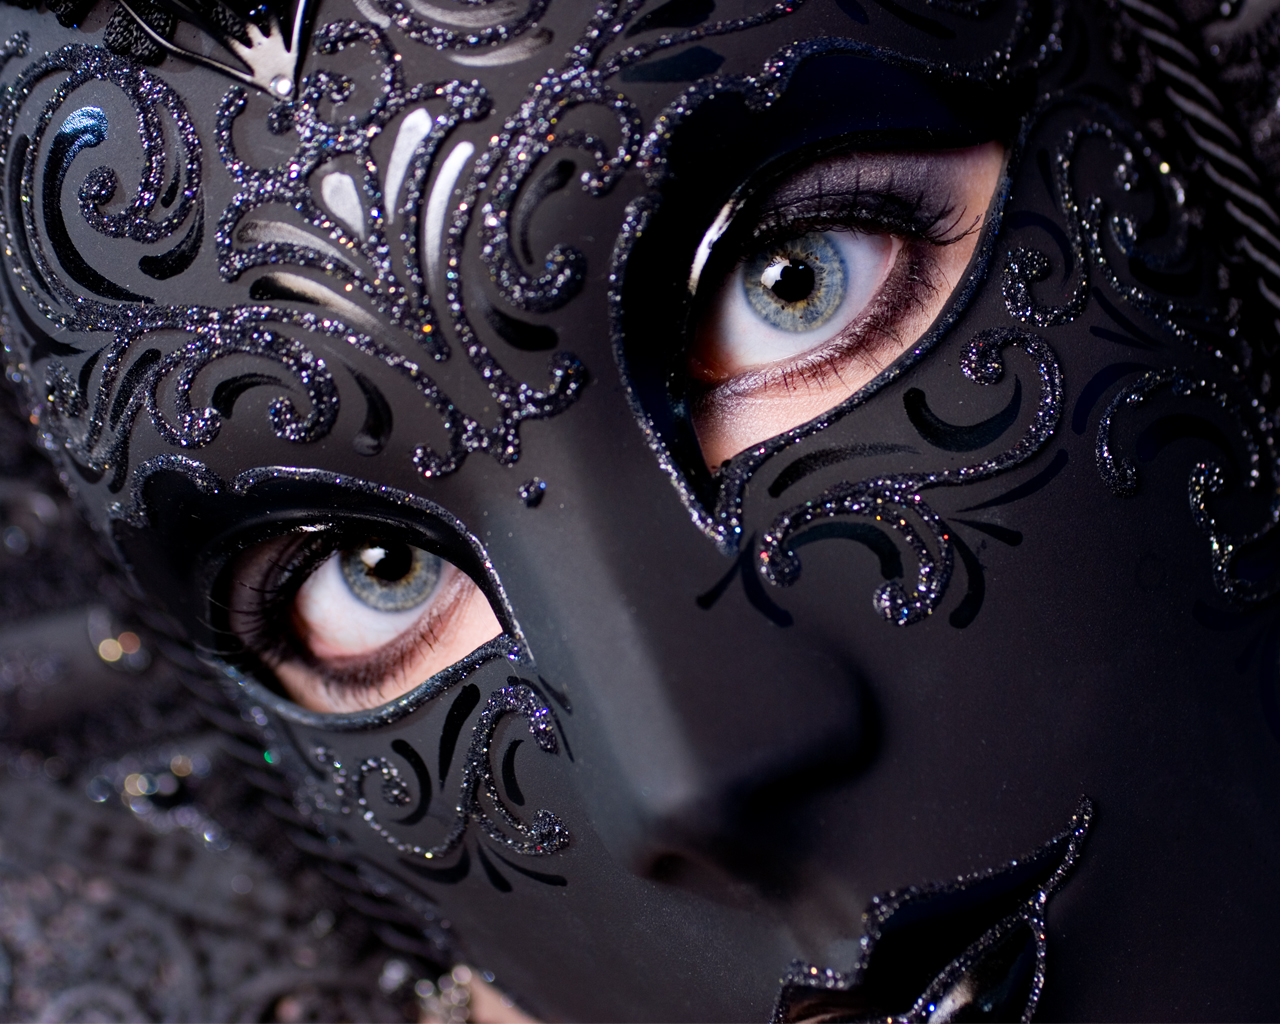 women art mask - photo #15